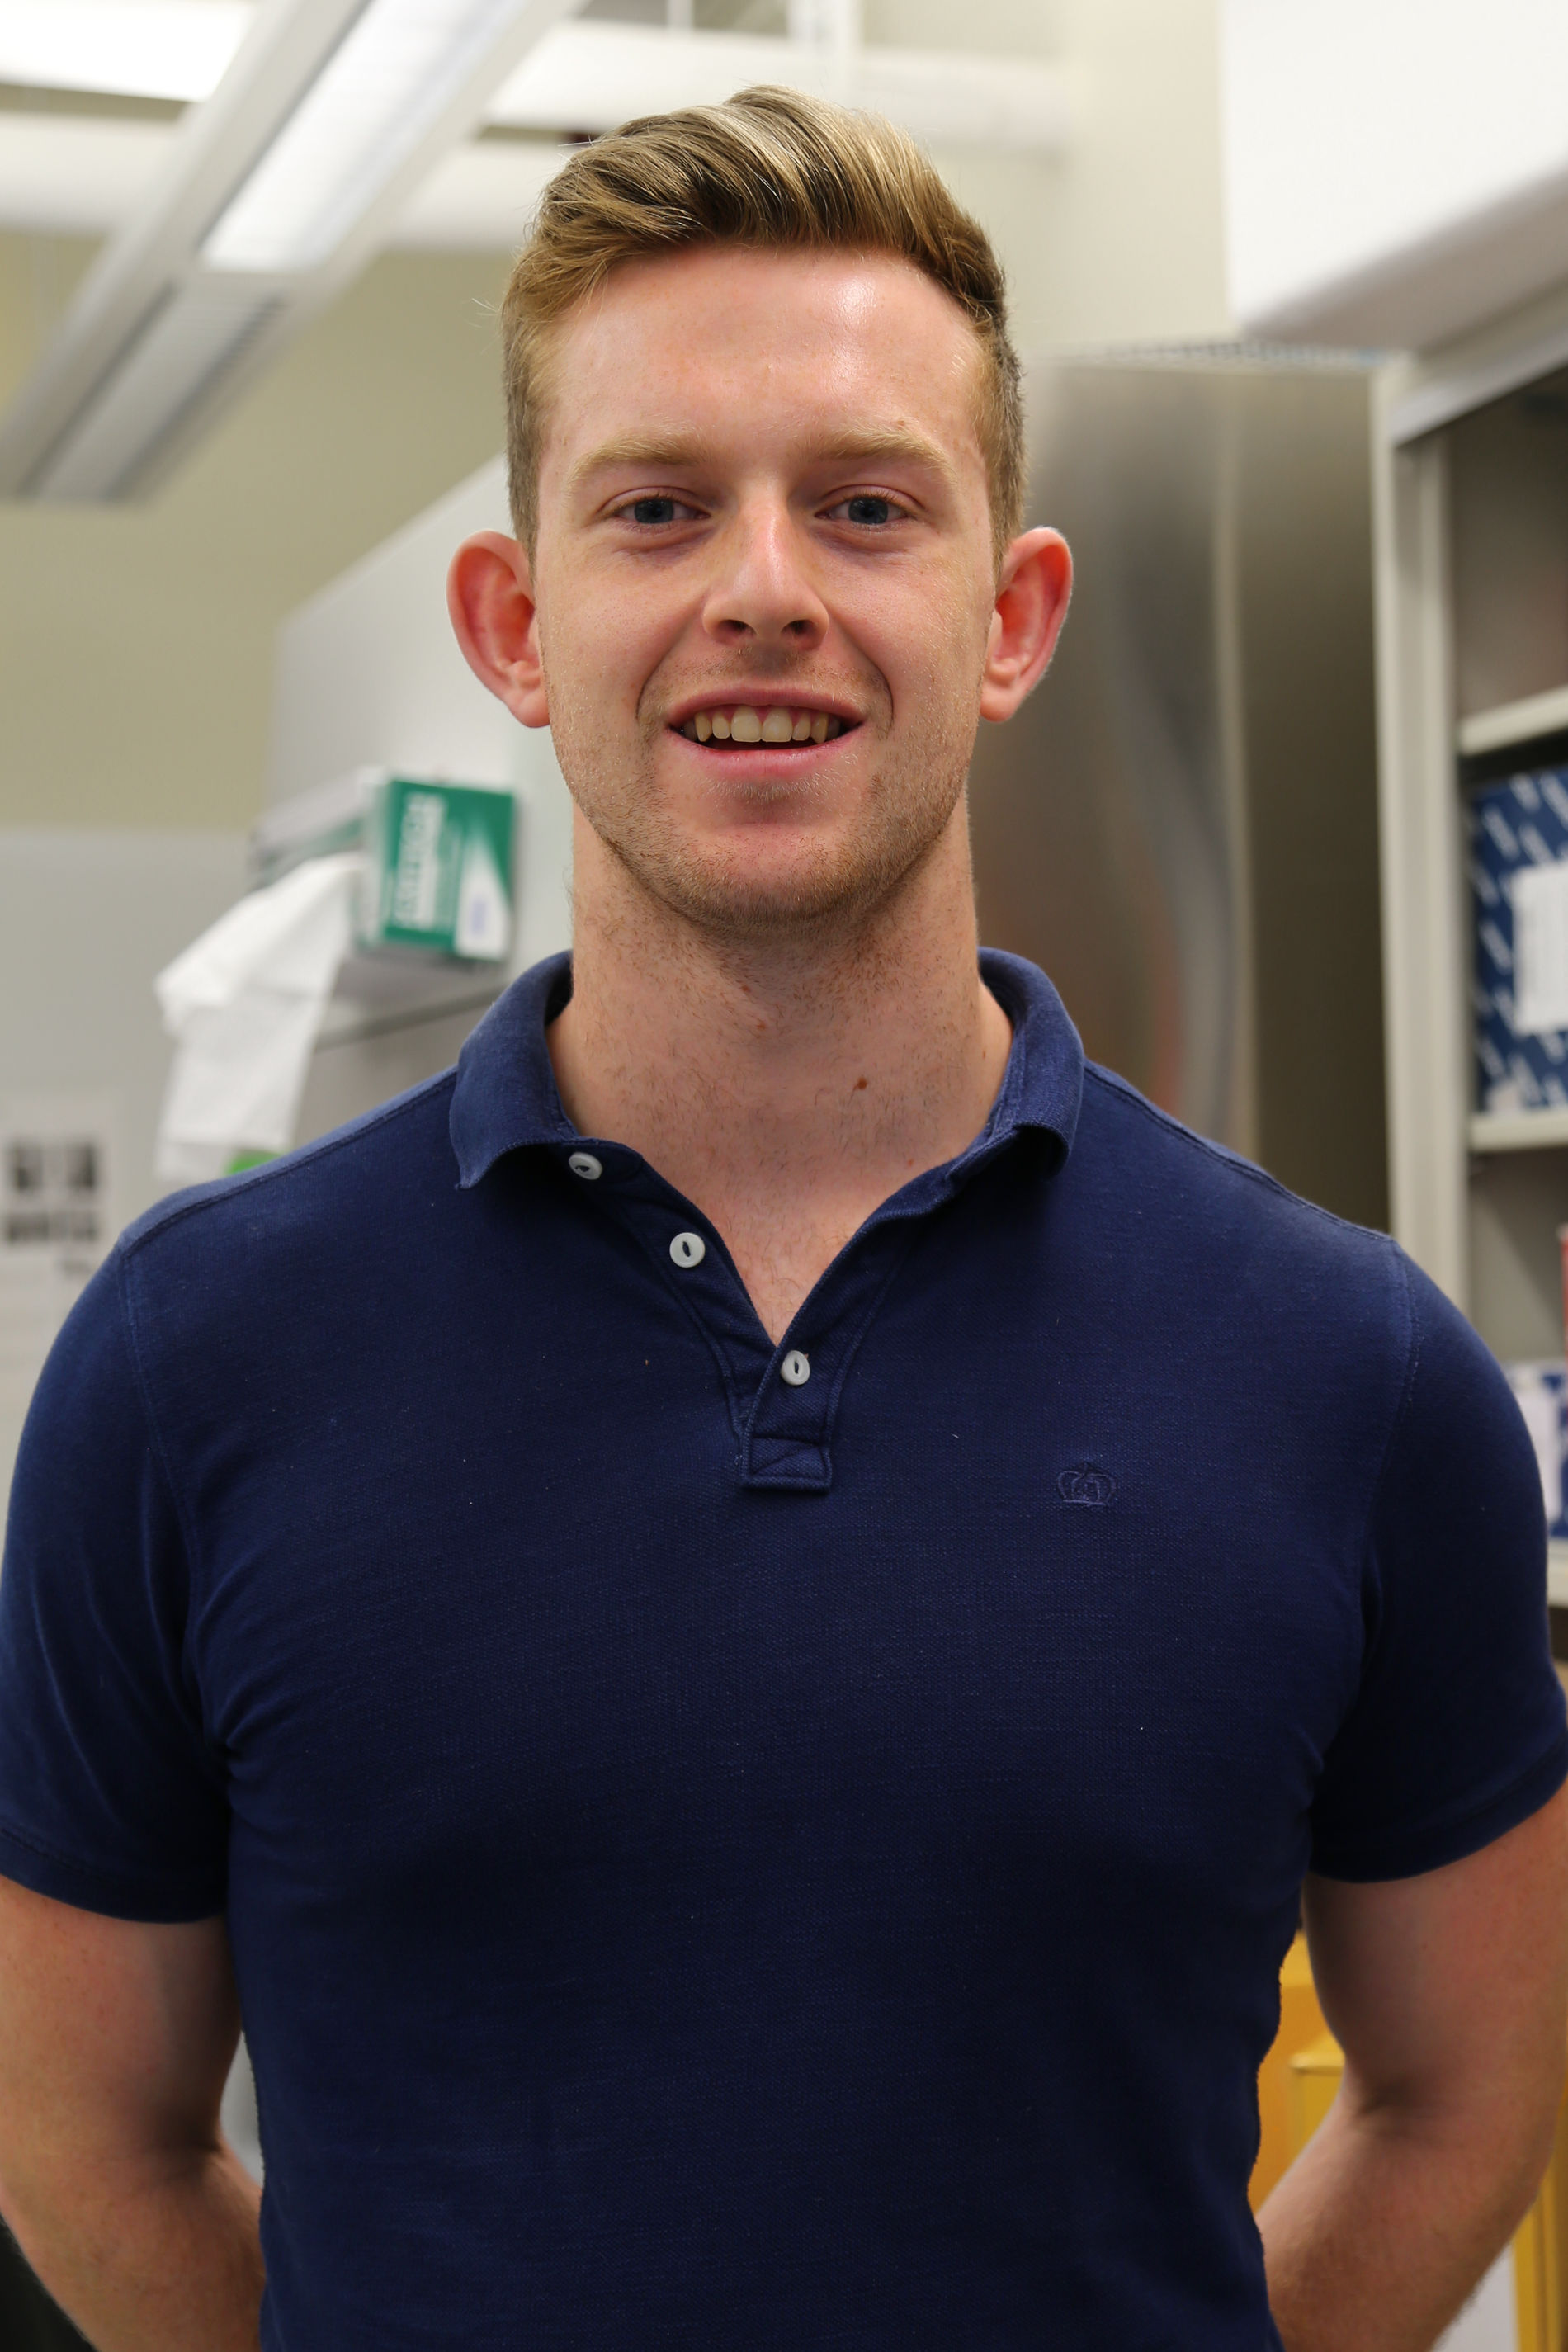 James Healy - Research Technician